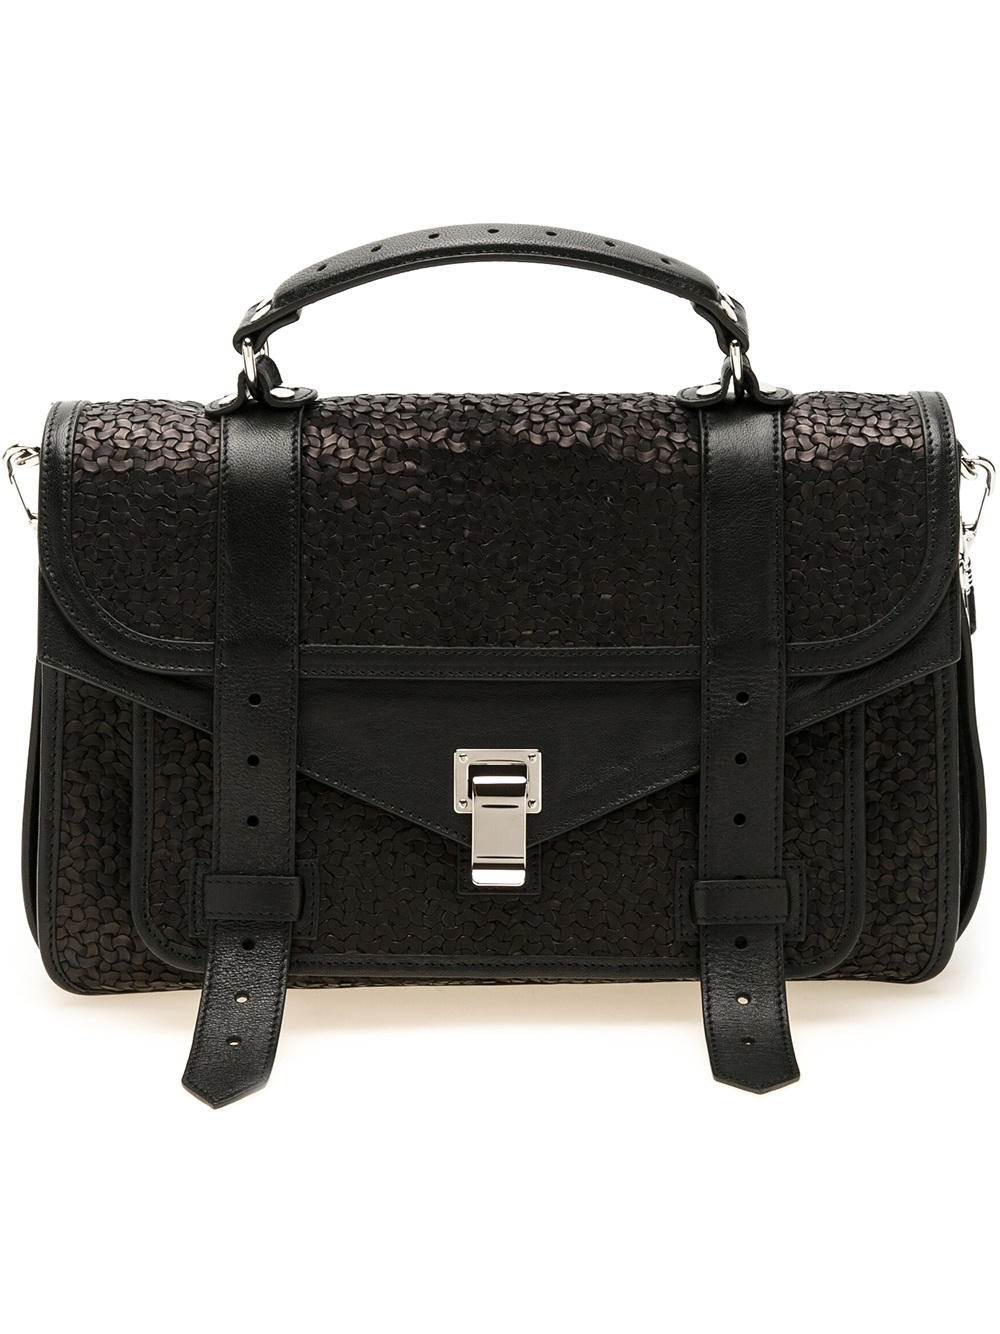 Ps1+ Textured-leather Backpack - Black Proenza Schouler 7xCsx0zD